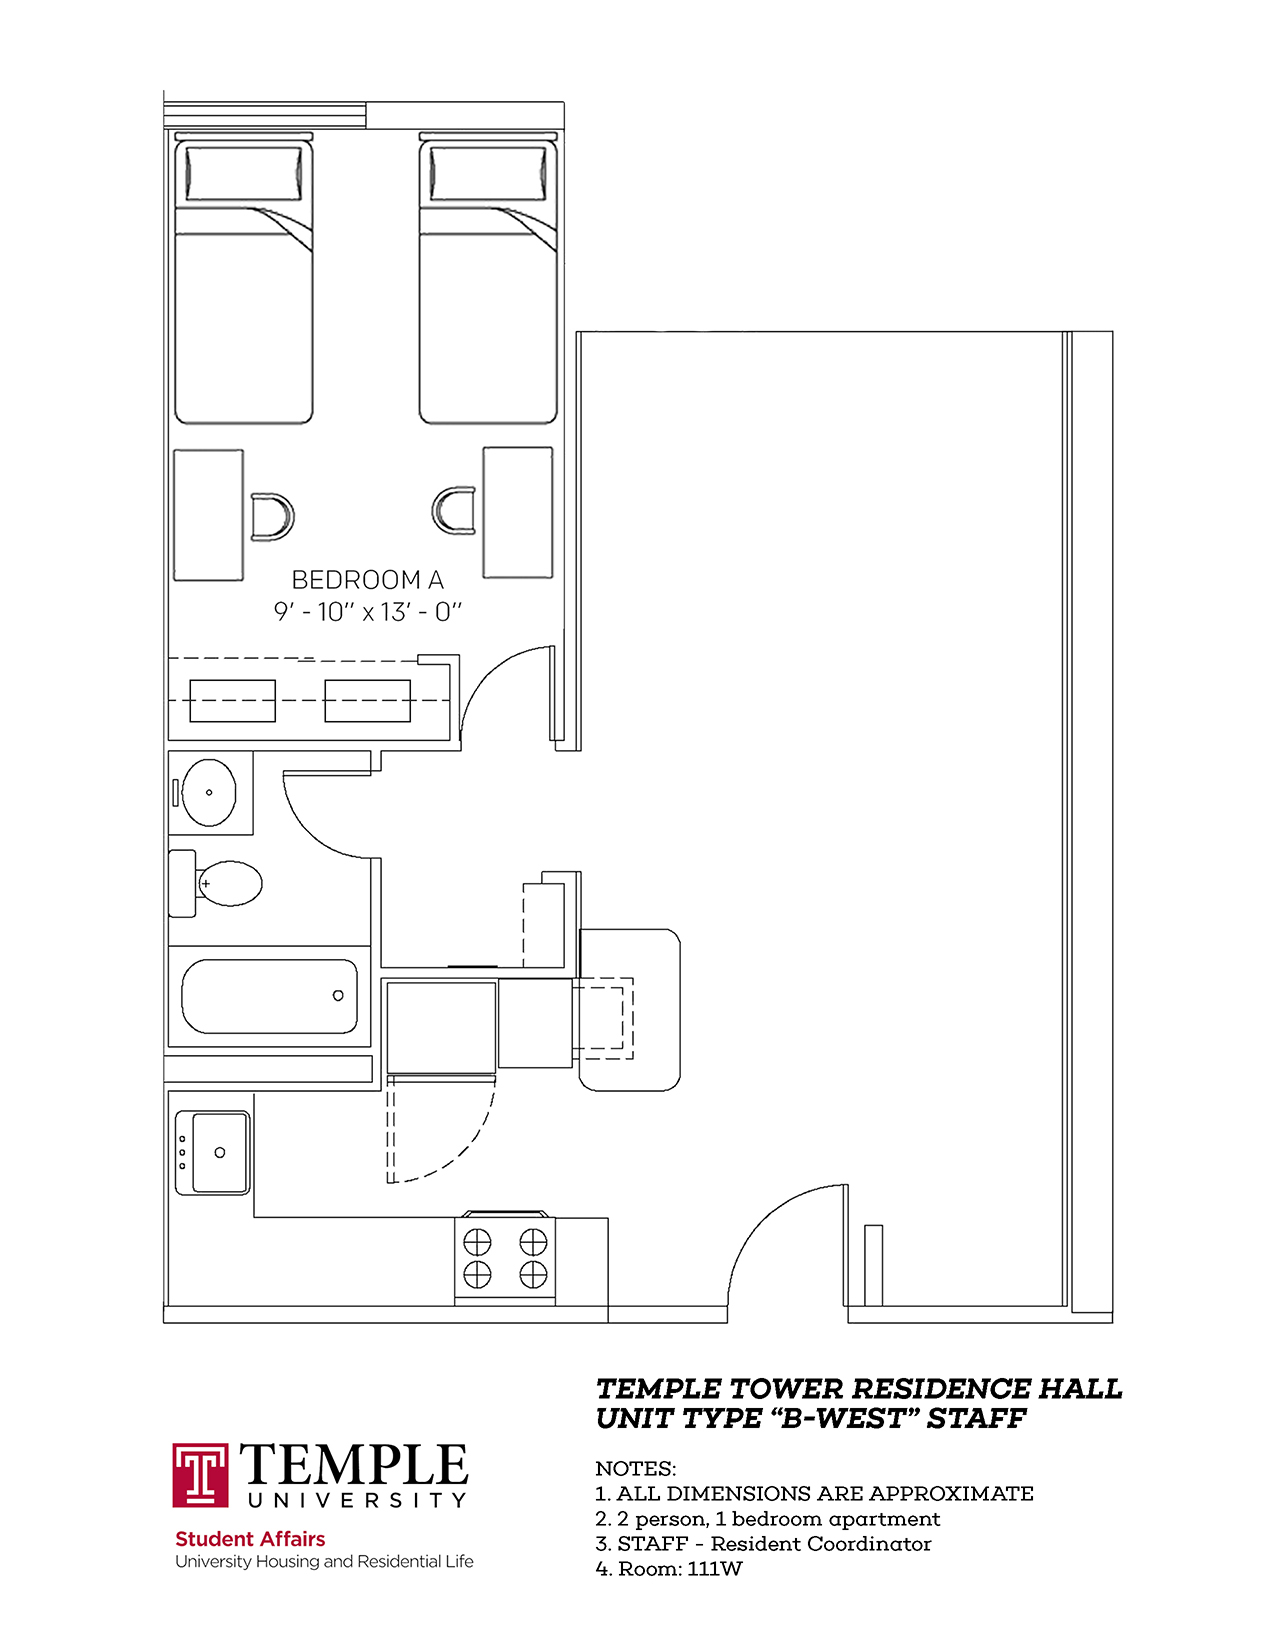 Temple Towers: Unit B West - 2 person, 1 bedroom Apartment